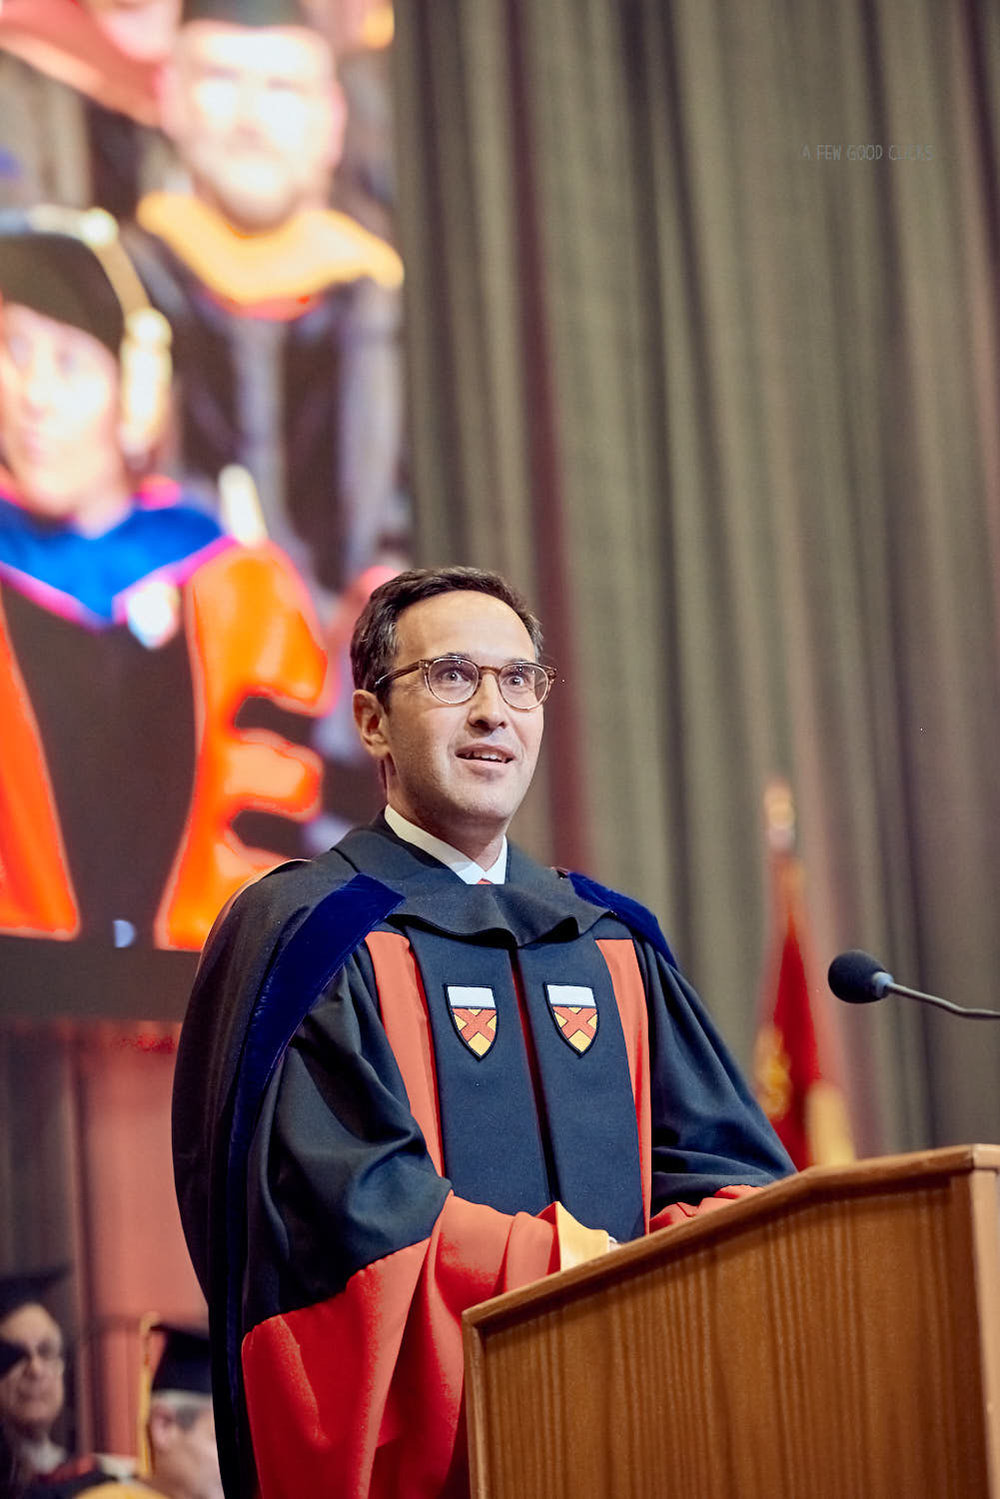 Welcome remarks by the Dean Jonathan Levin at Stanford.